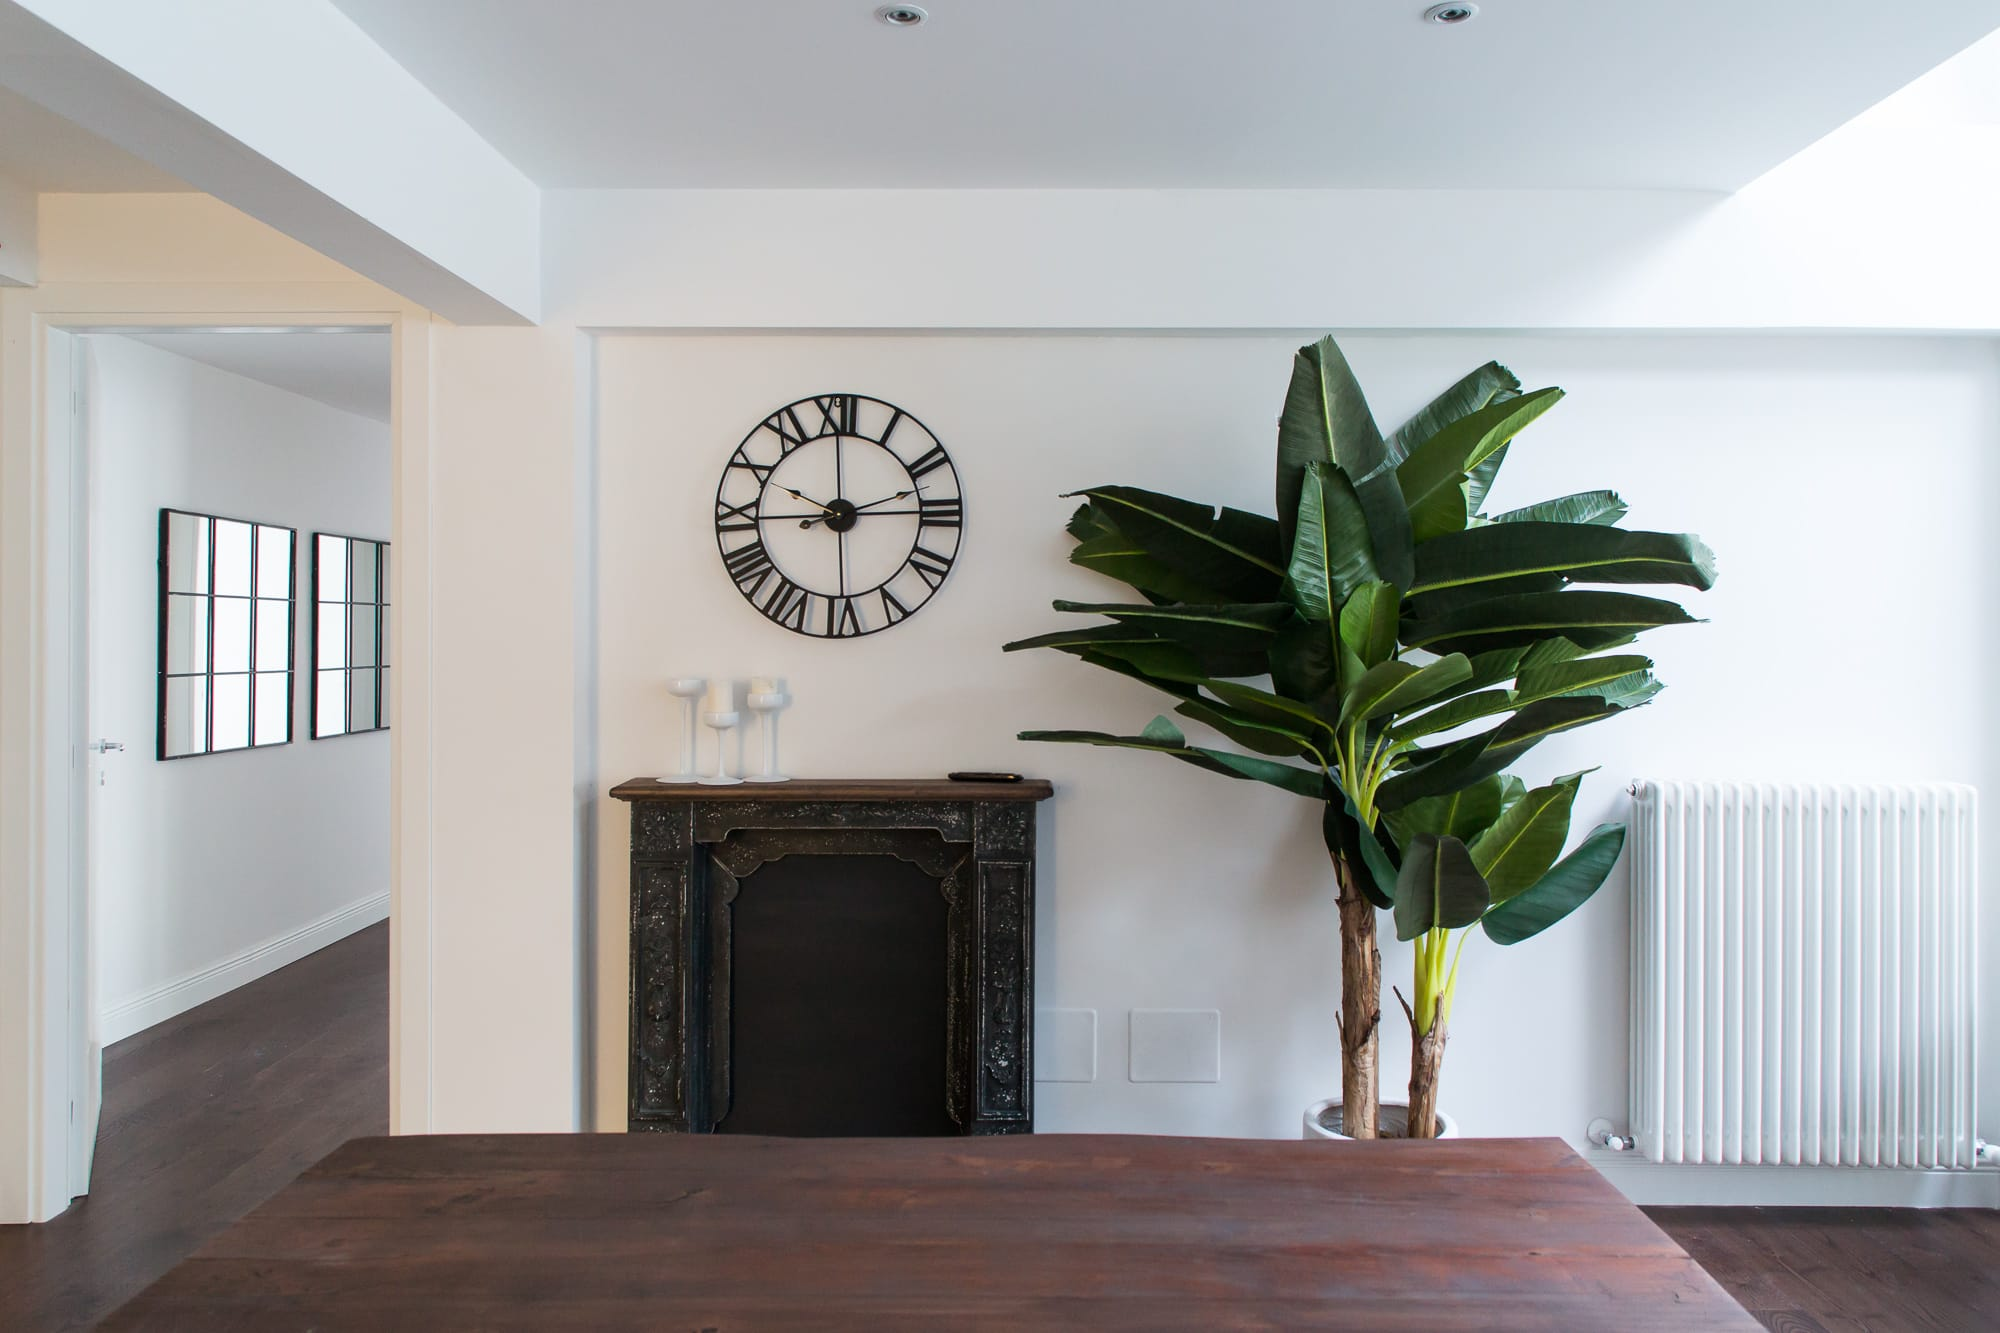 Vintage fireplace with a banana tree on the right side, a metal frame watch on the wall, and some minimal industrial mirrors on the left side of the wall.